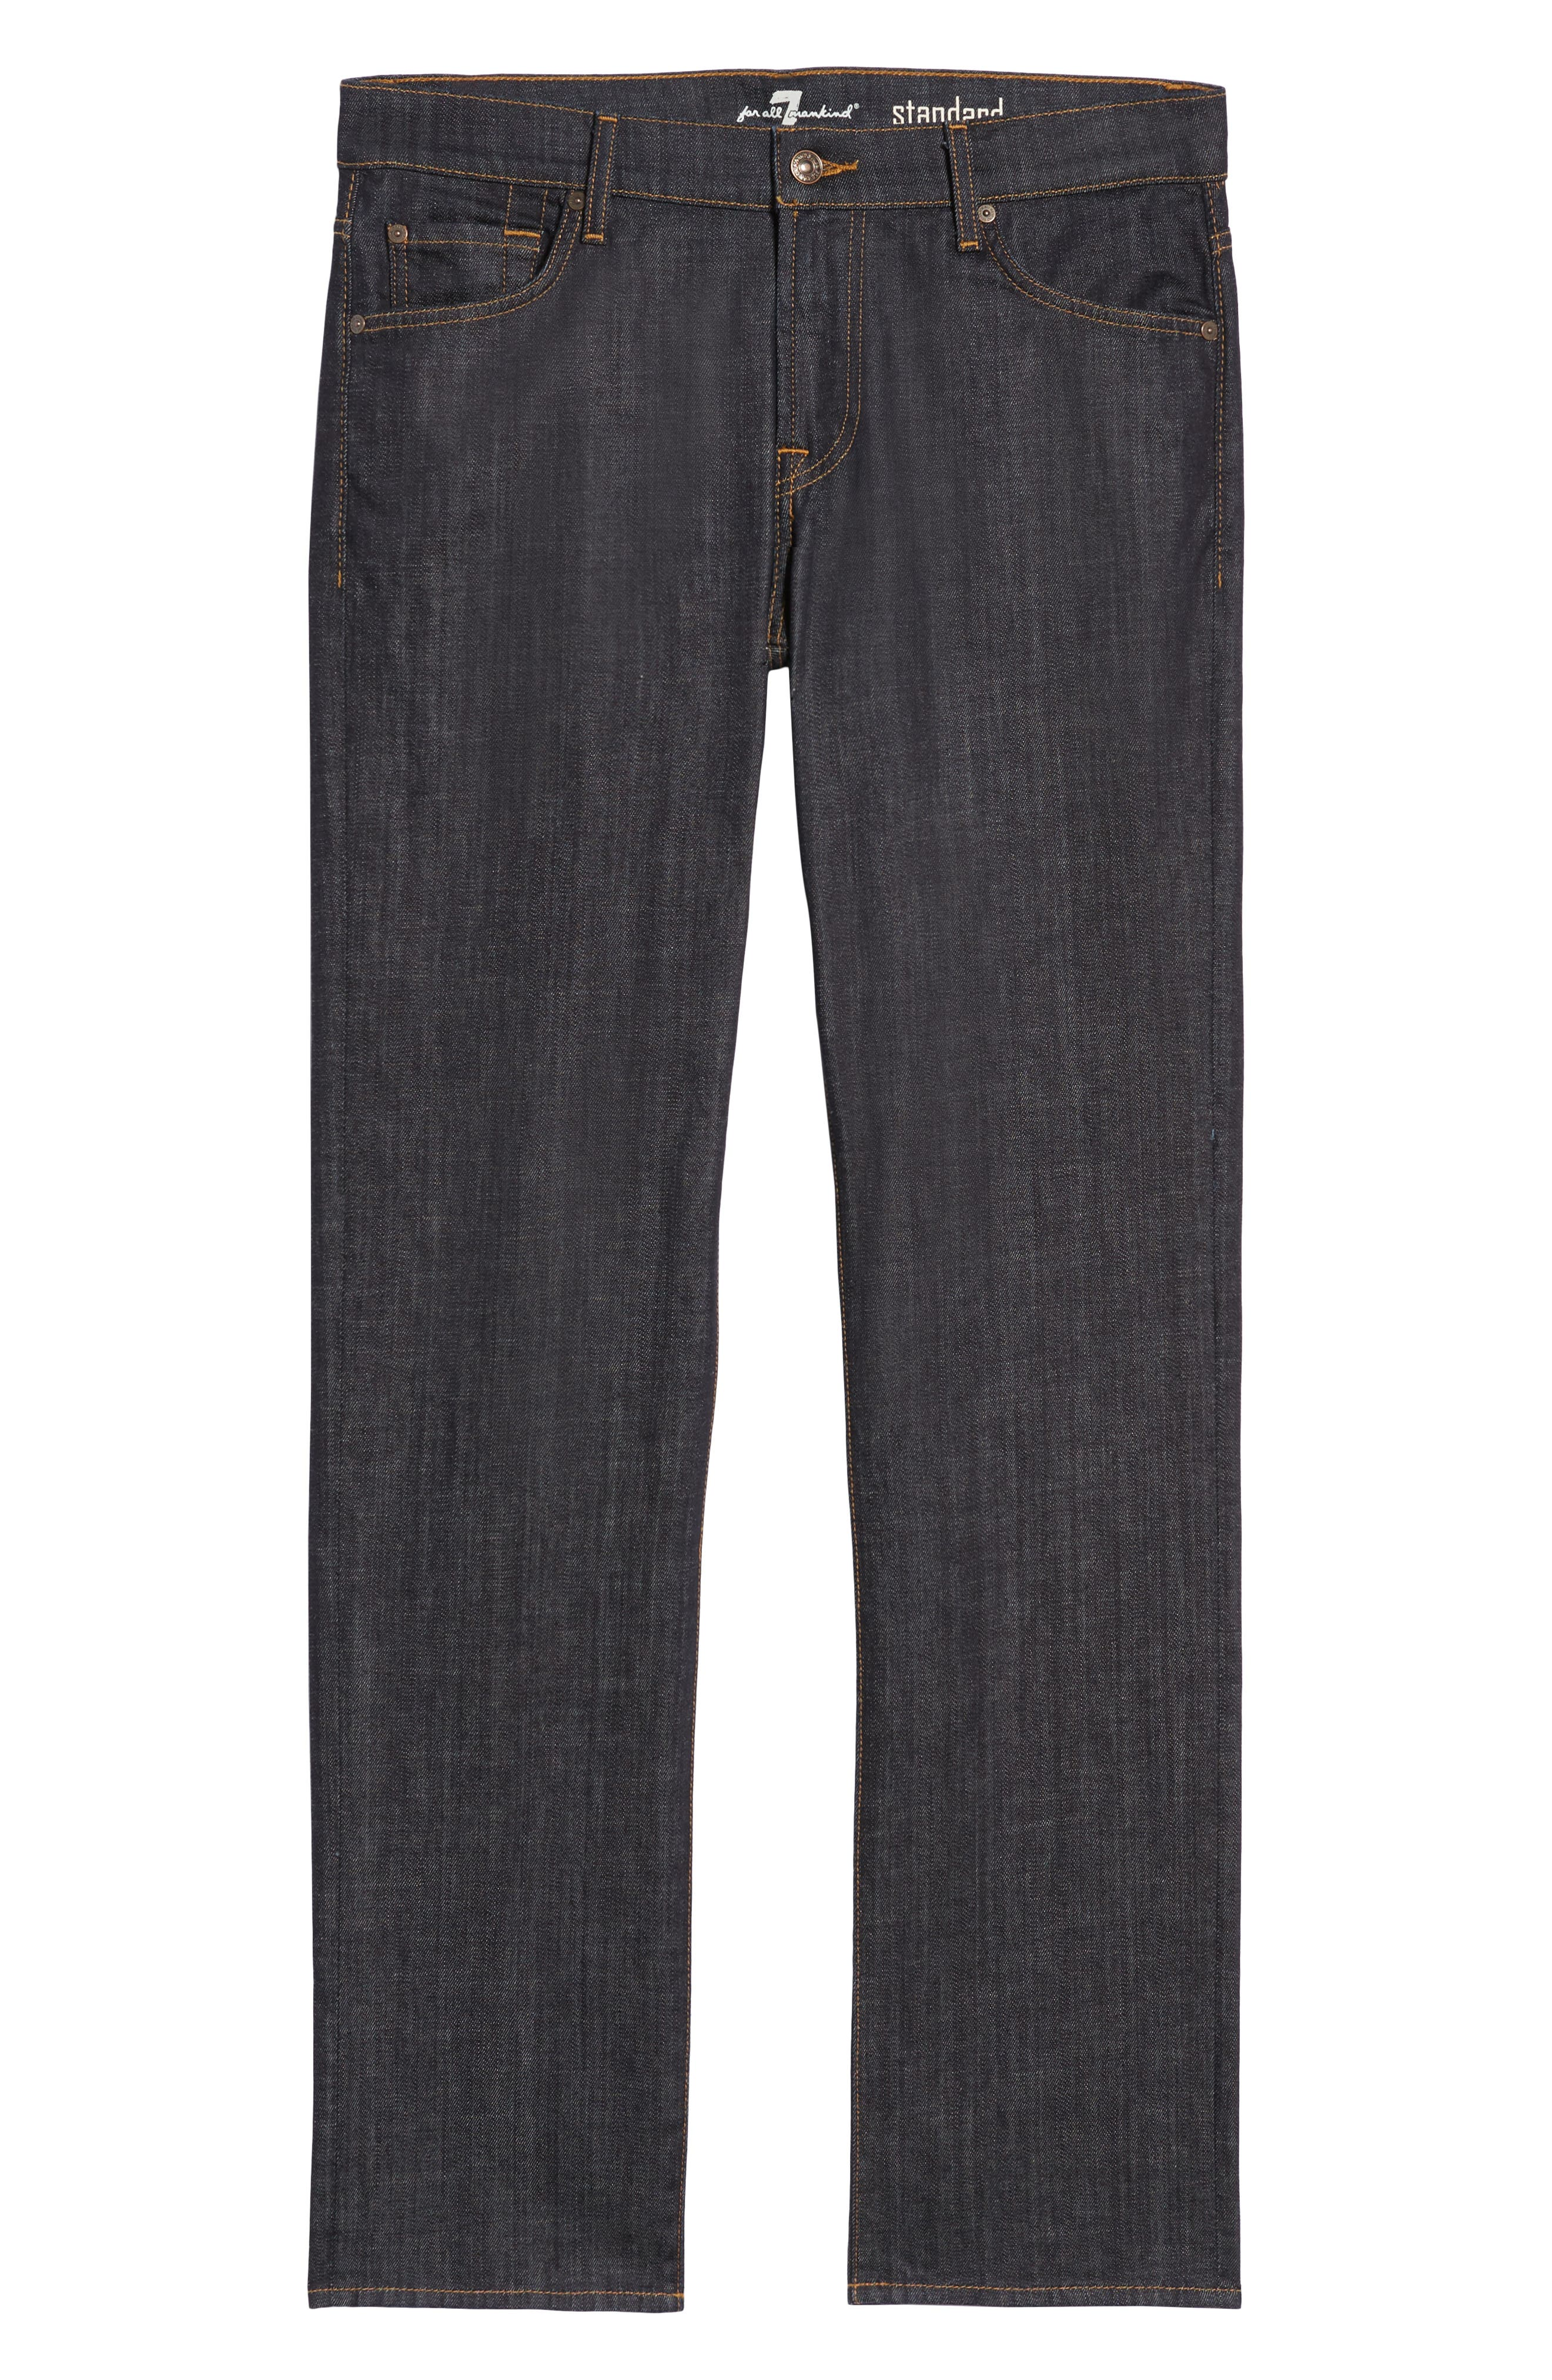 'Standard' Straight Leg Jeans,                             Alternate thumbnail 7, color,                             DARK AND CLEAN